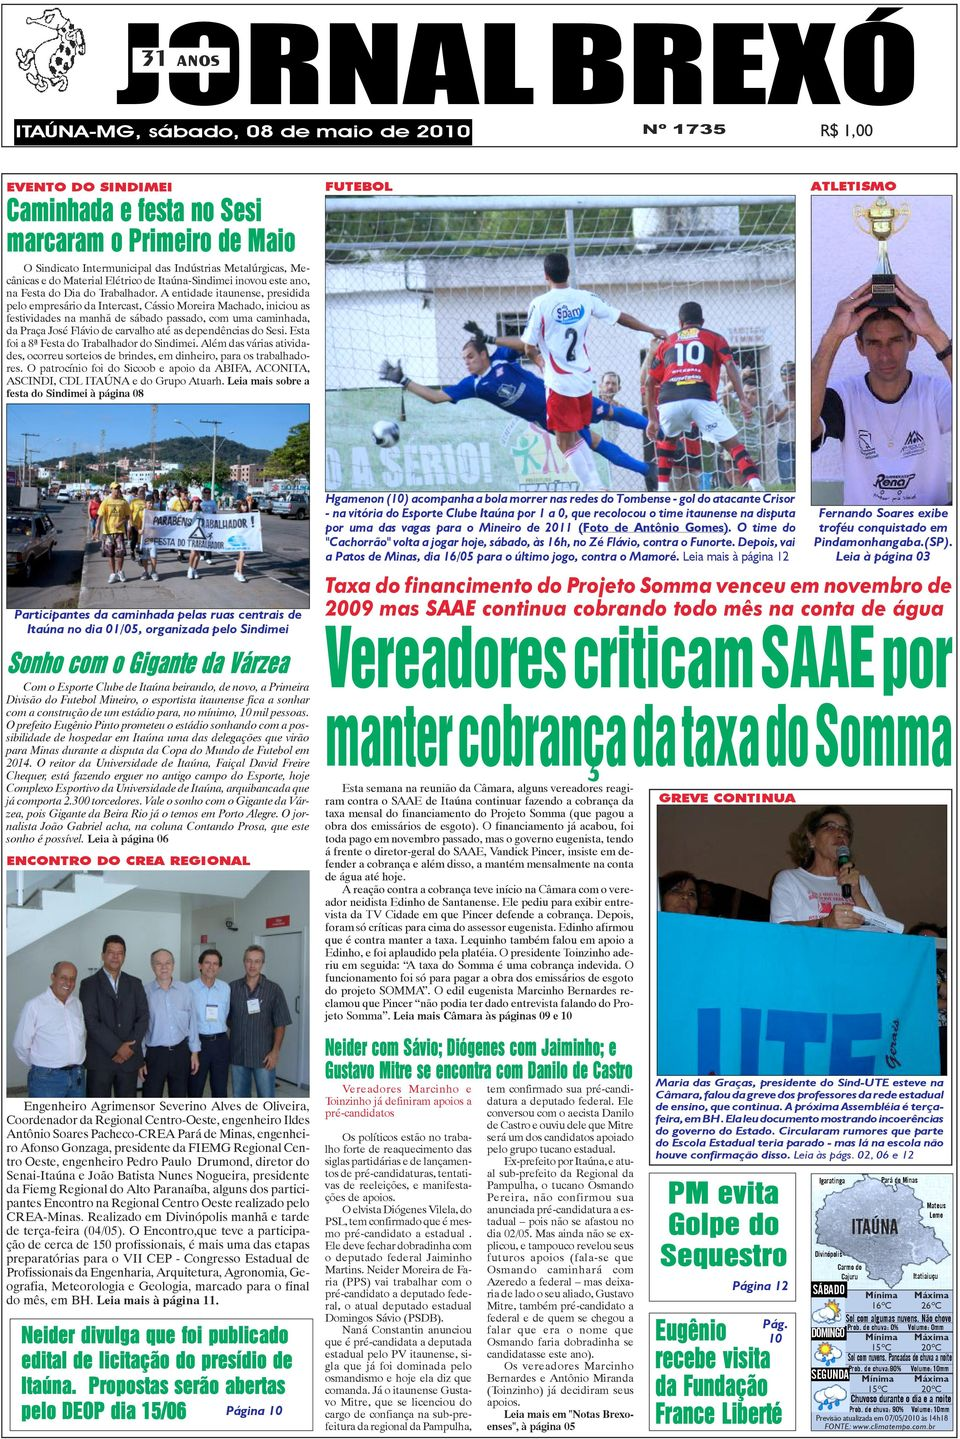 JORNAL BREXÓ. PM evita Golpe do Sequestro - PDF 0bef28149d926